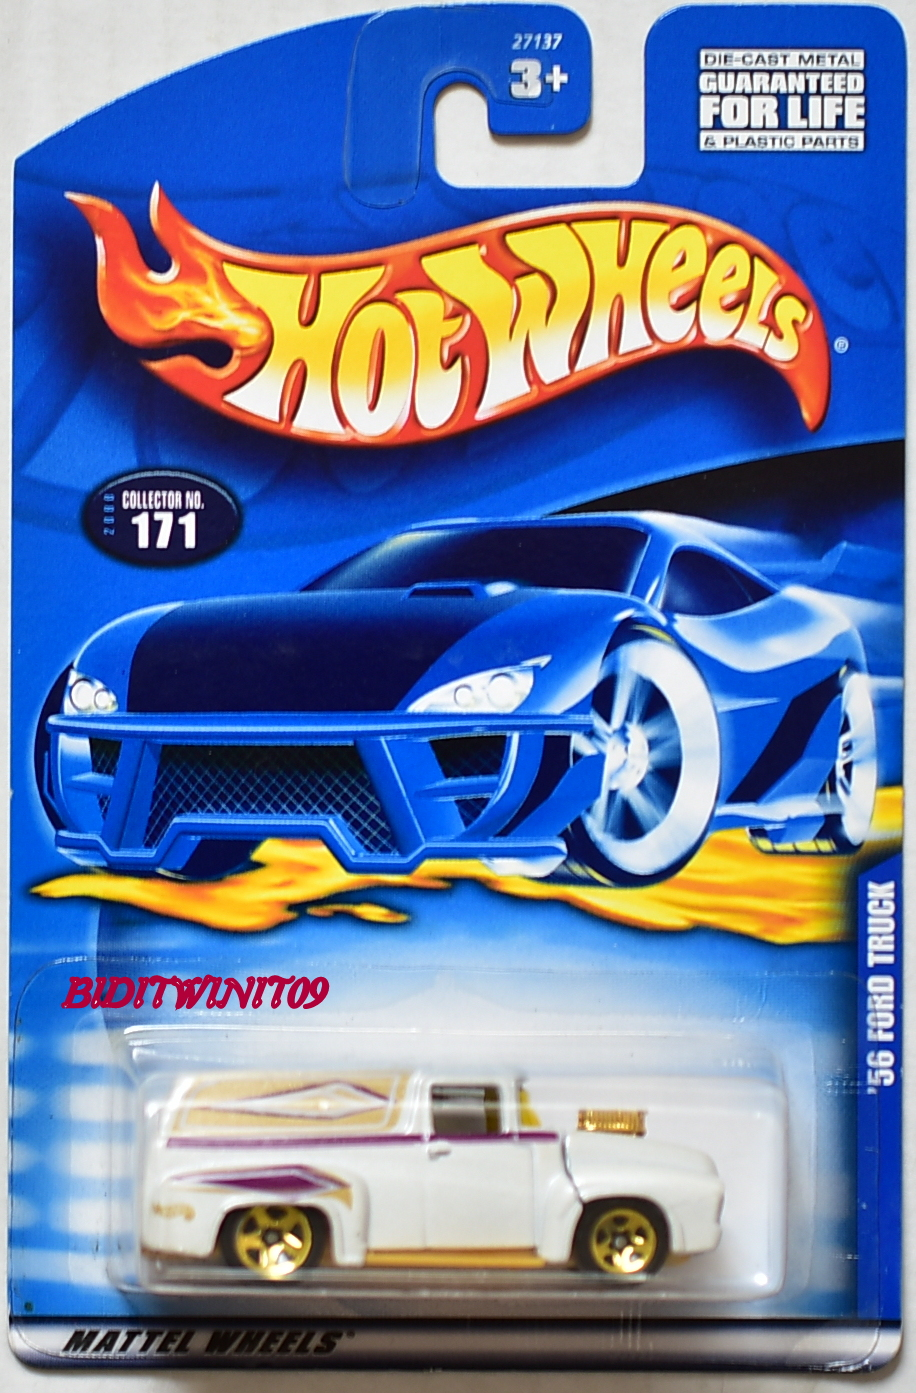 HOT WHEELS 2000 '56 FORD TRUCK #171 WHITE NEW CARD E+ - Click Image to Close